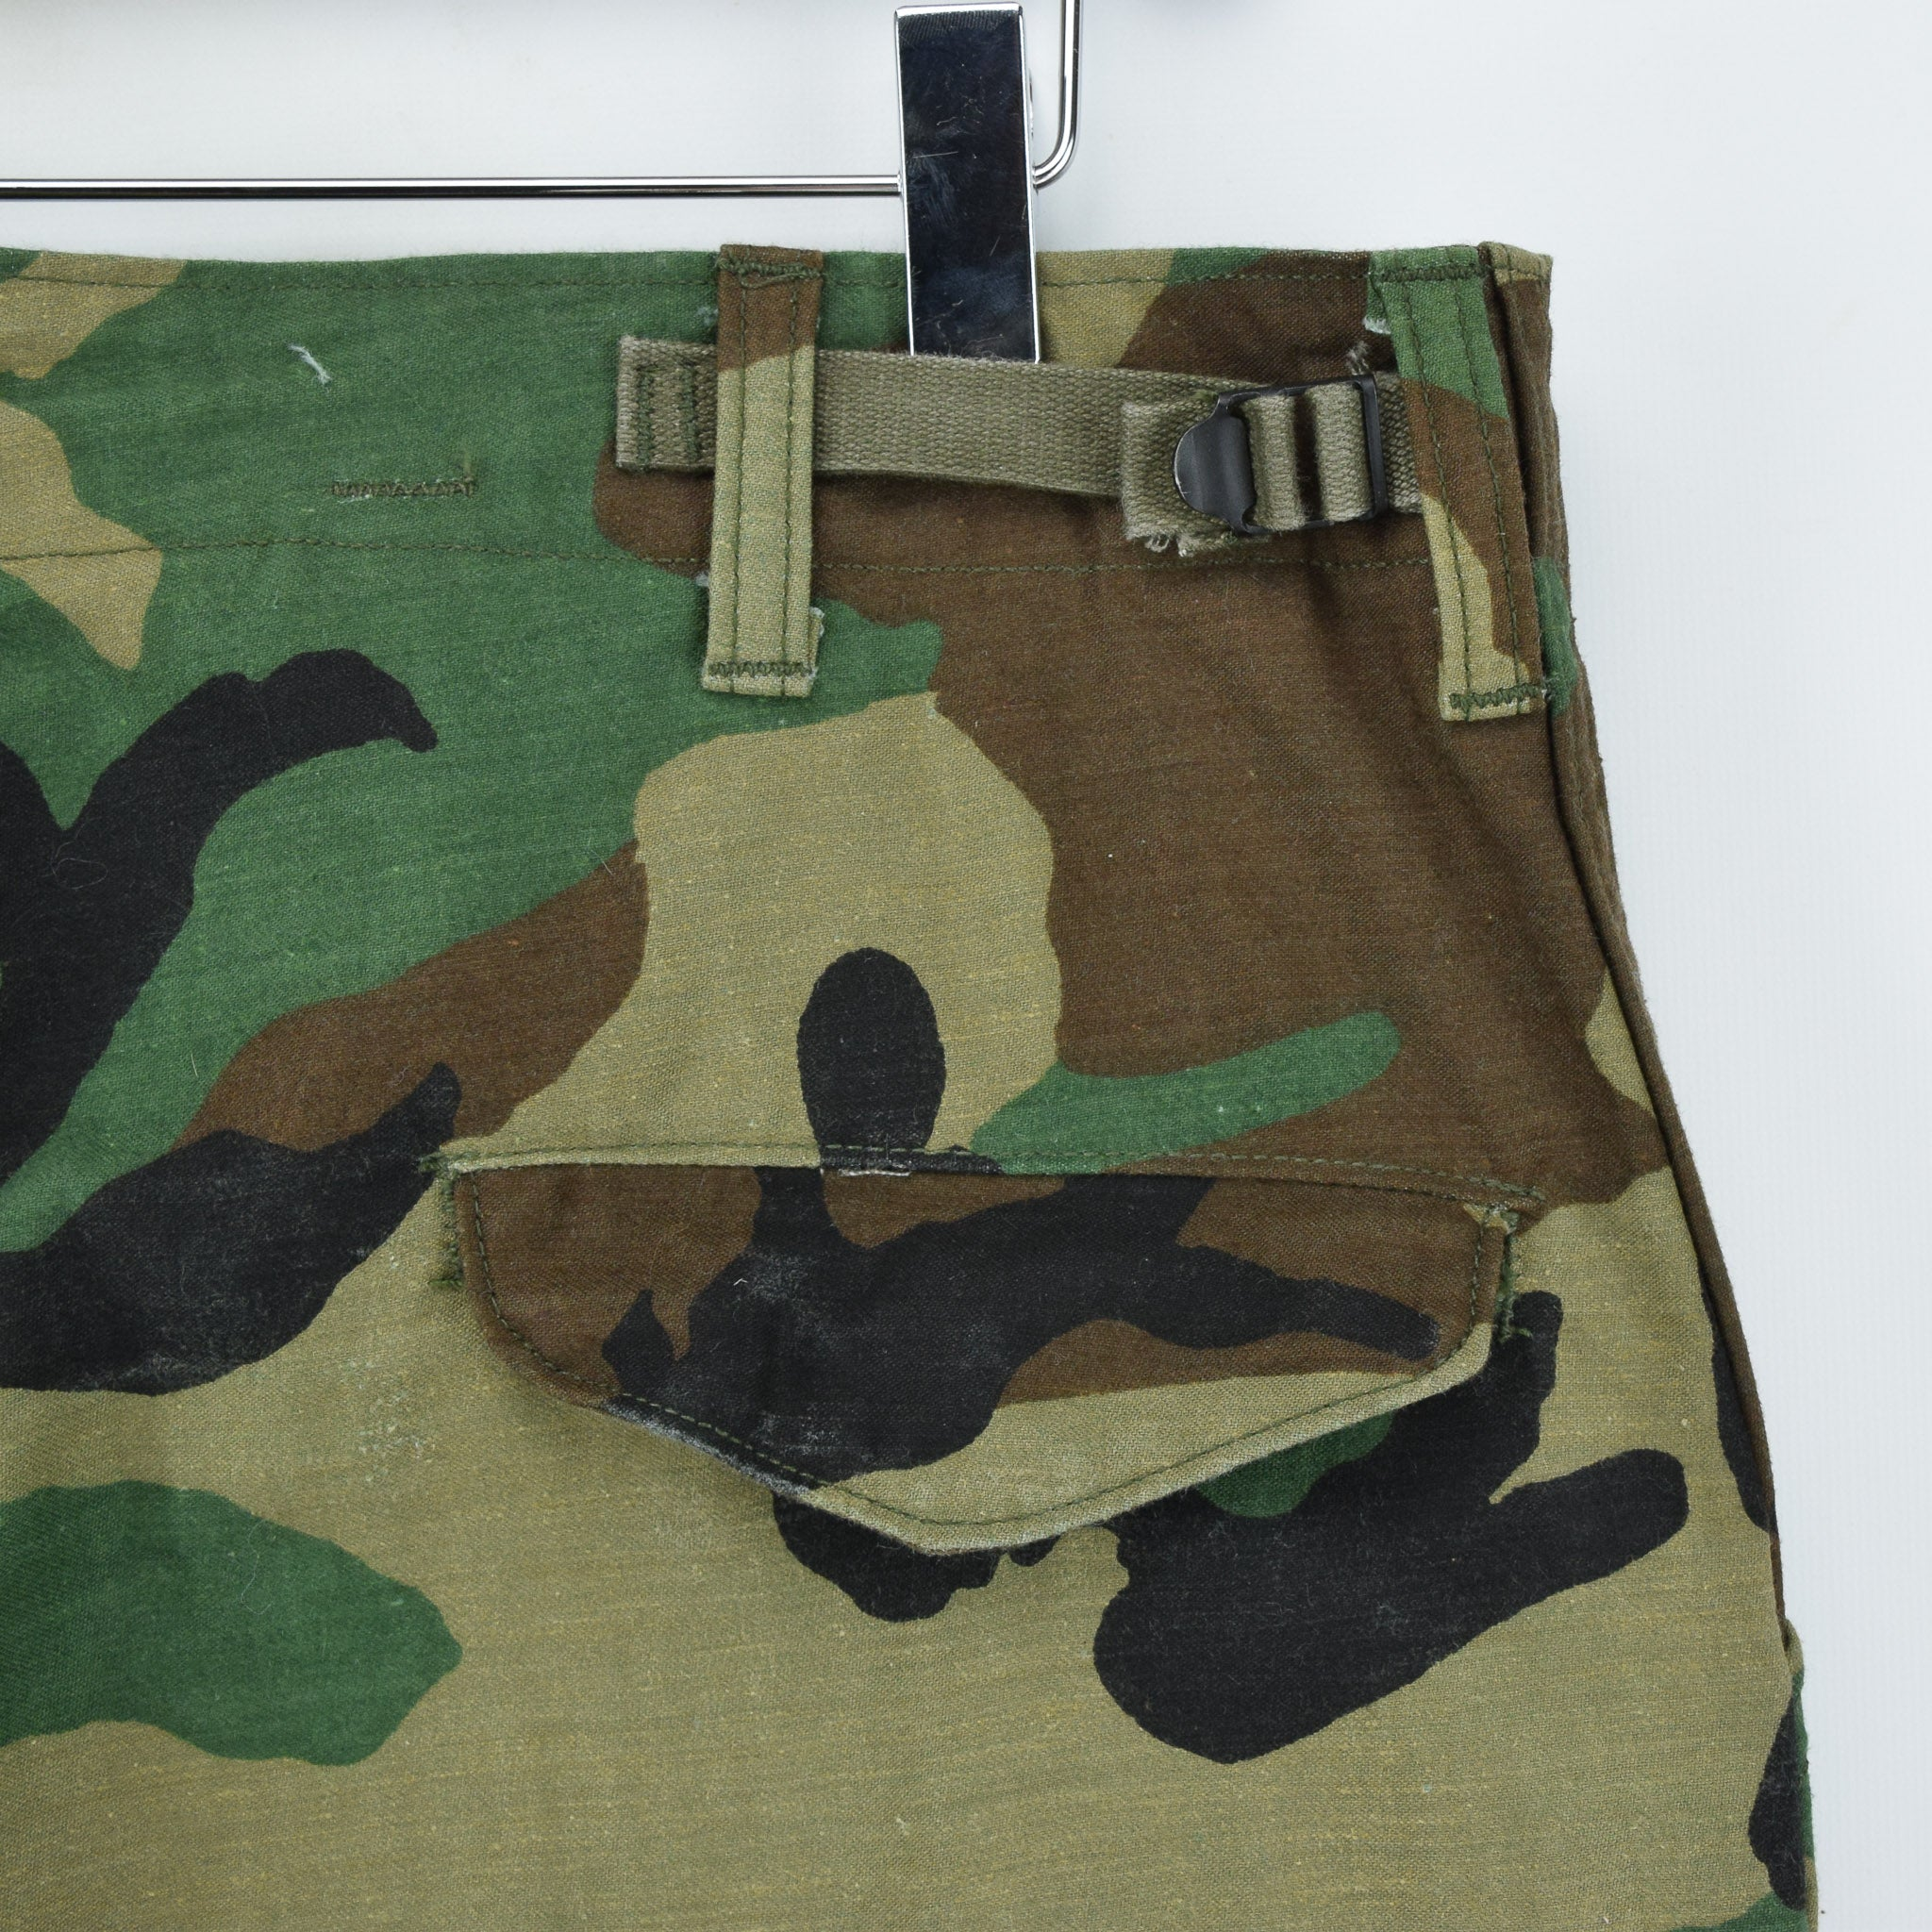 Vintage 80s US Army Camo Cold Weather Military Combat Field Trousers M Long back waist pocket